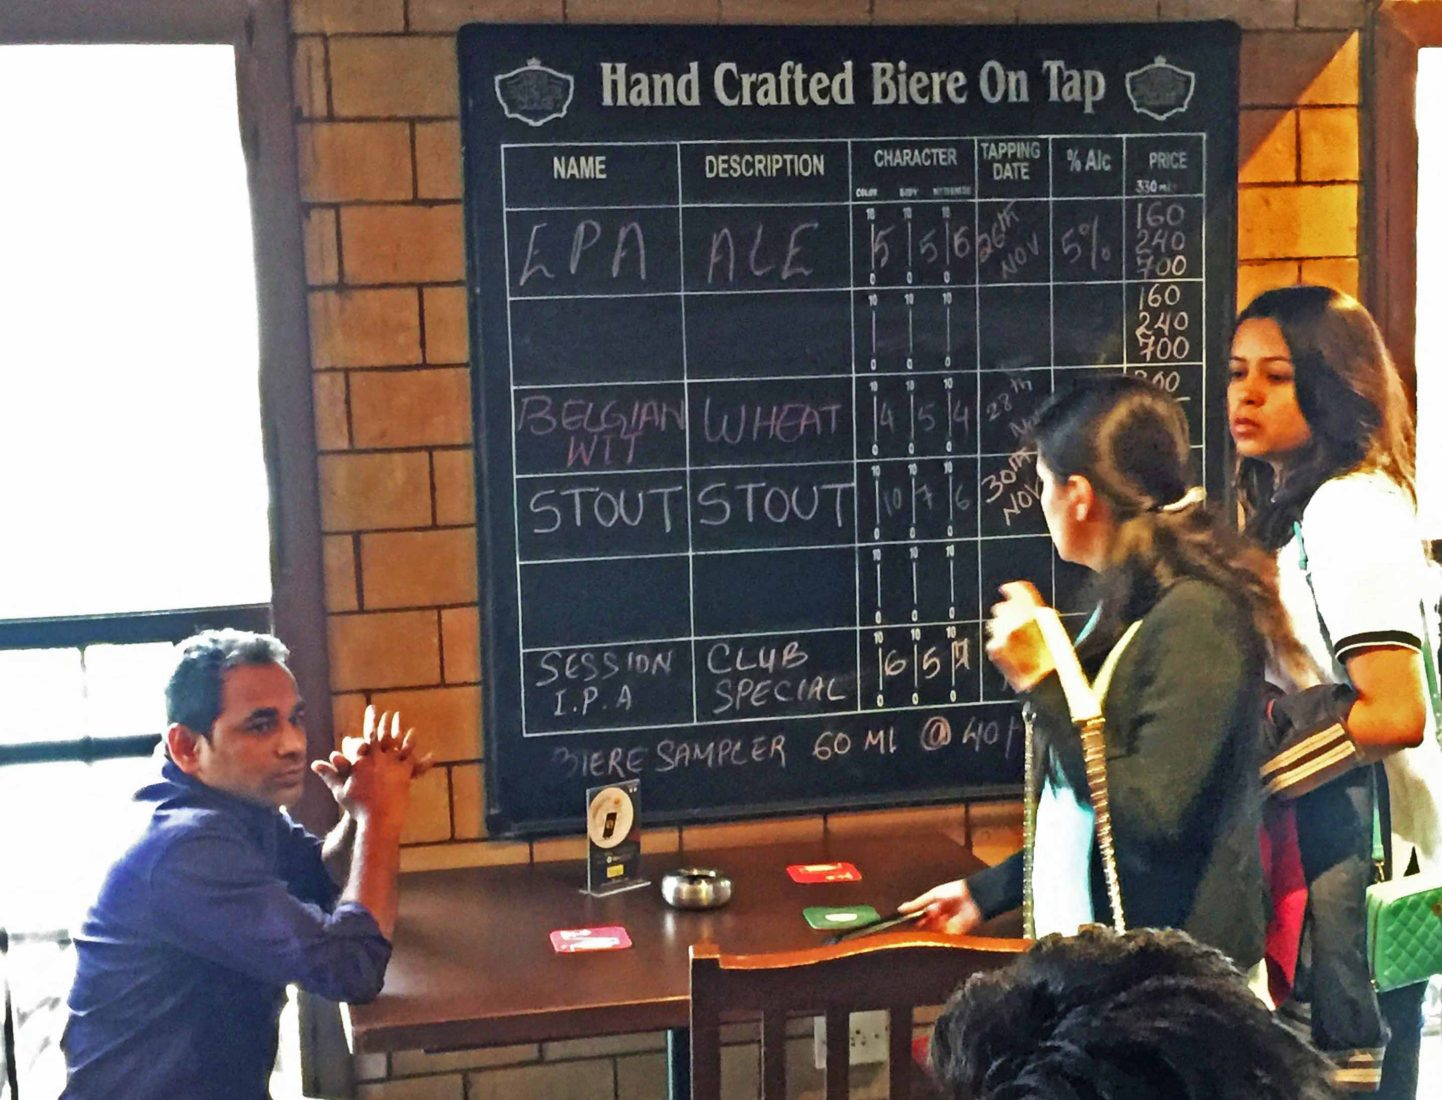 260. The Biere Club Craft Brewery, Bangalore India, 2015